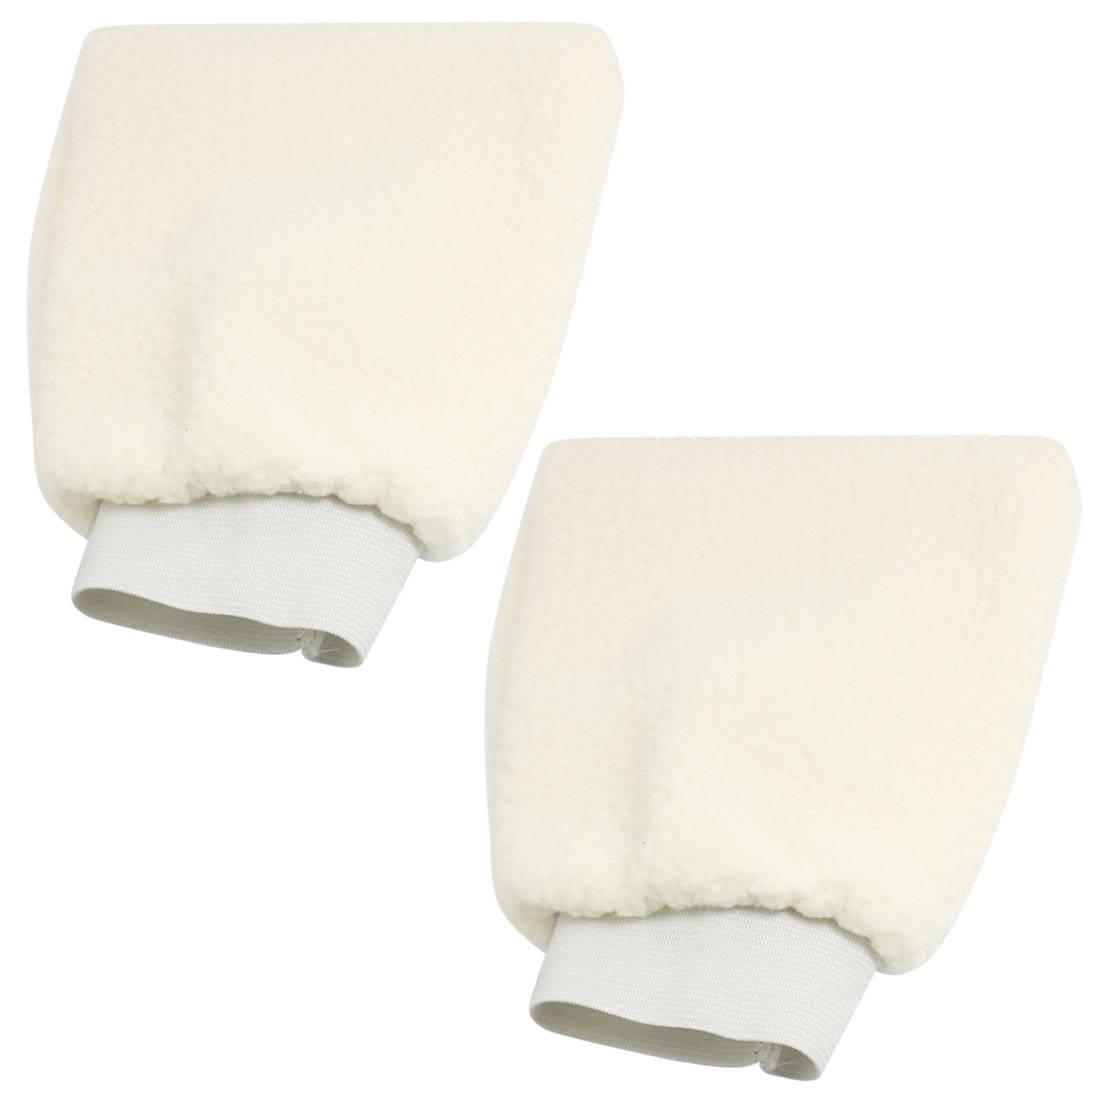 Off White Plush Car Auto Washing Cleaning Mitt Gloves Pair